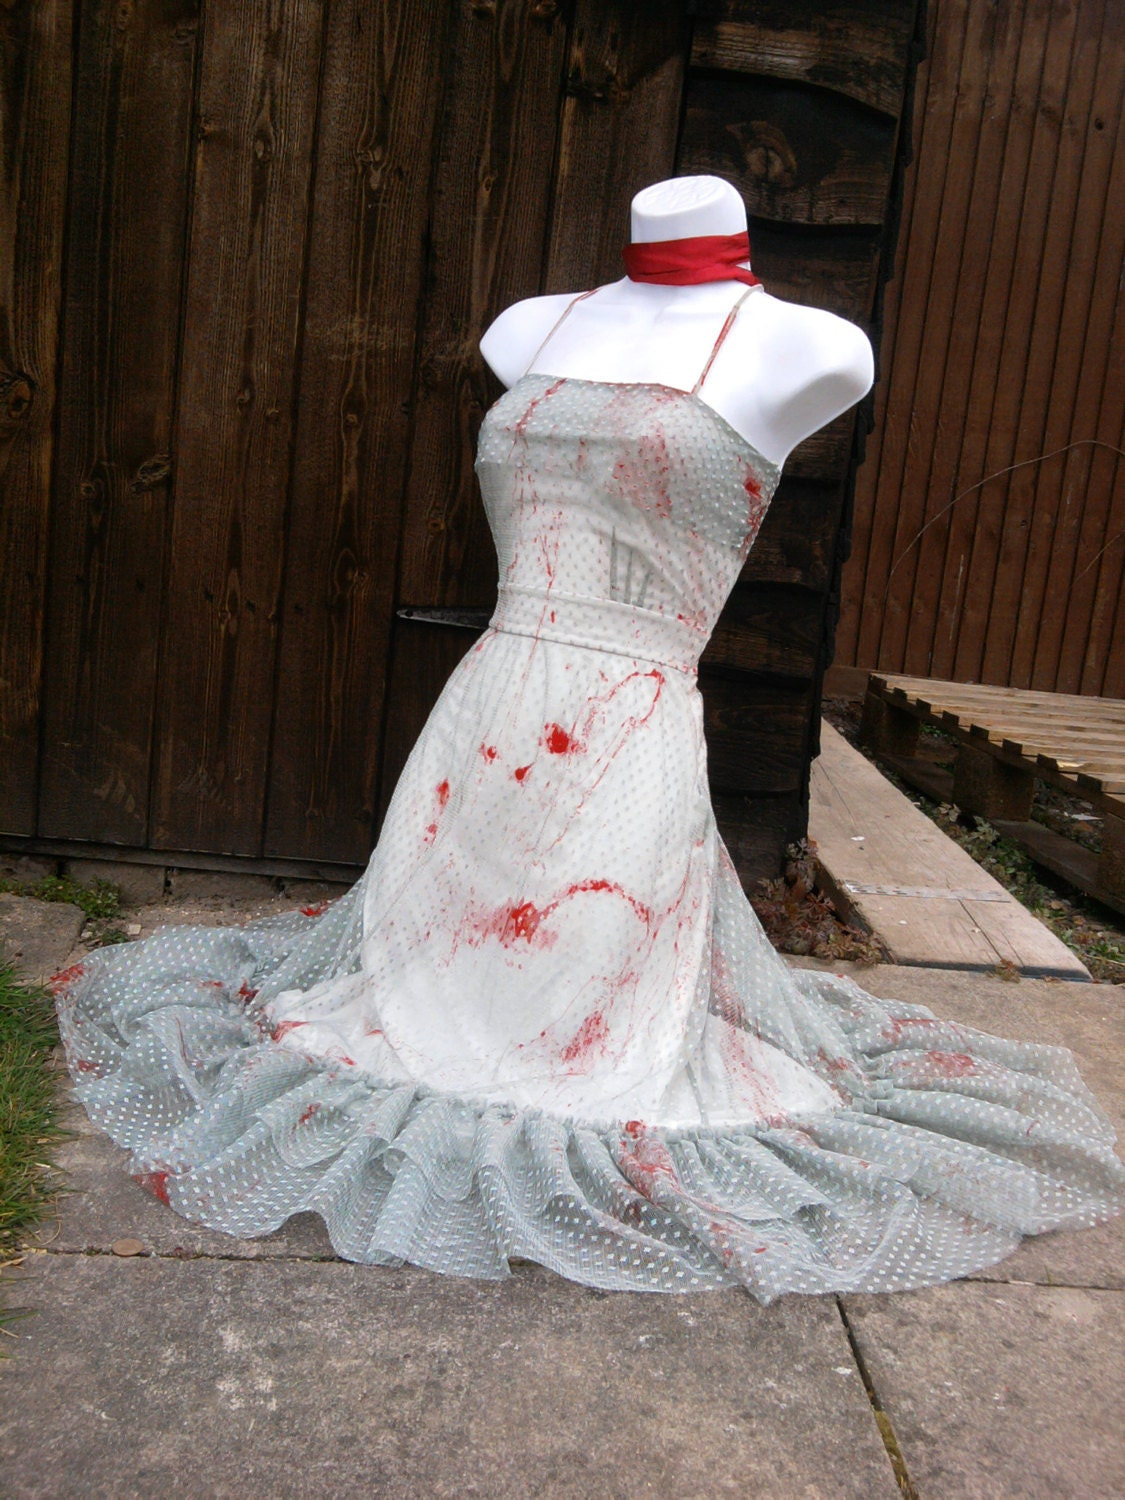 Zombie Wedding Dress For  : Zombie green lace bride walking country girl vampire wedding